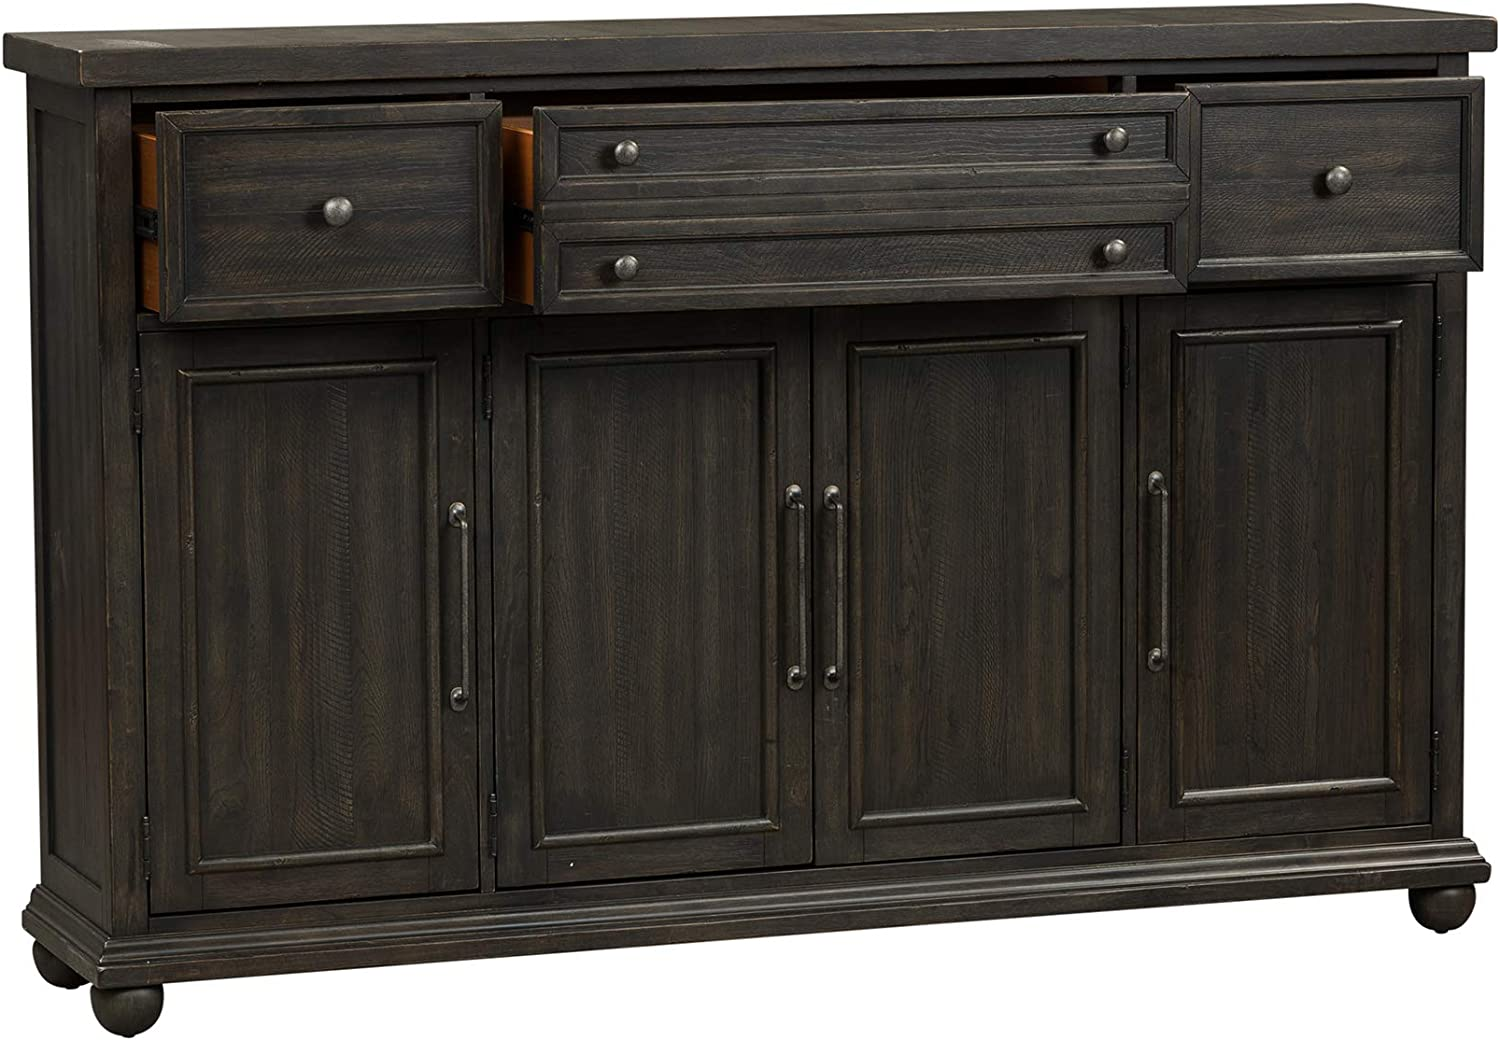 Amazon Com Liberty Furniture Industries Harvest Home Hall Buffet W72 X D15 X H46 Black Buffets Sideboards